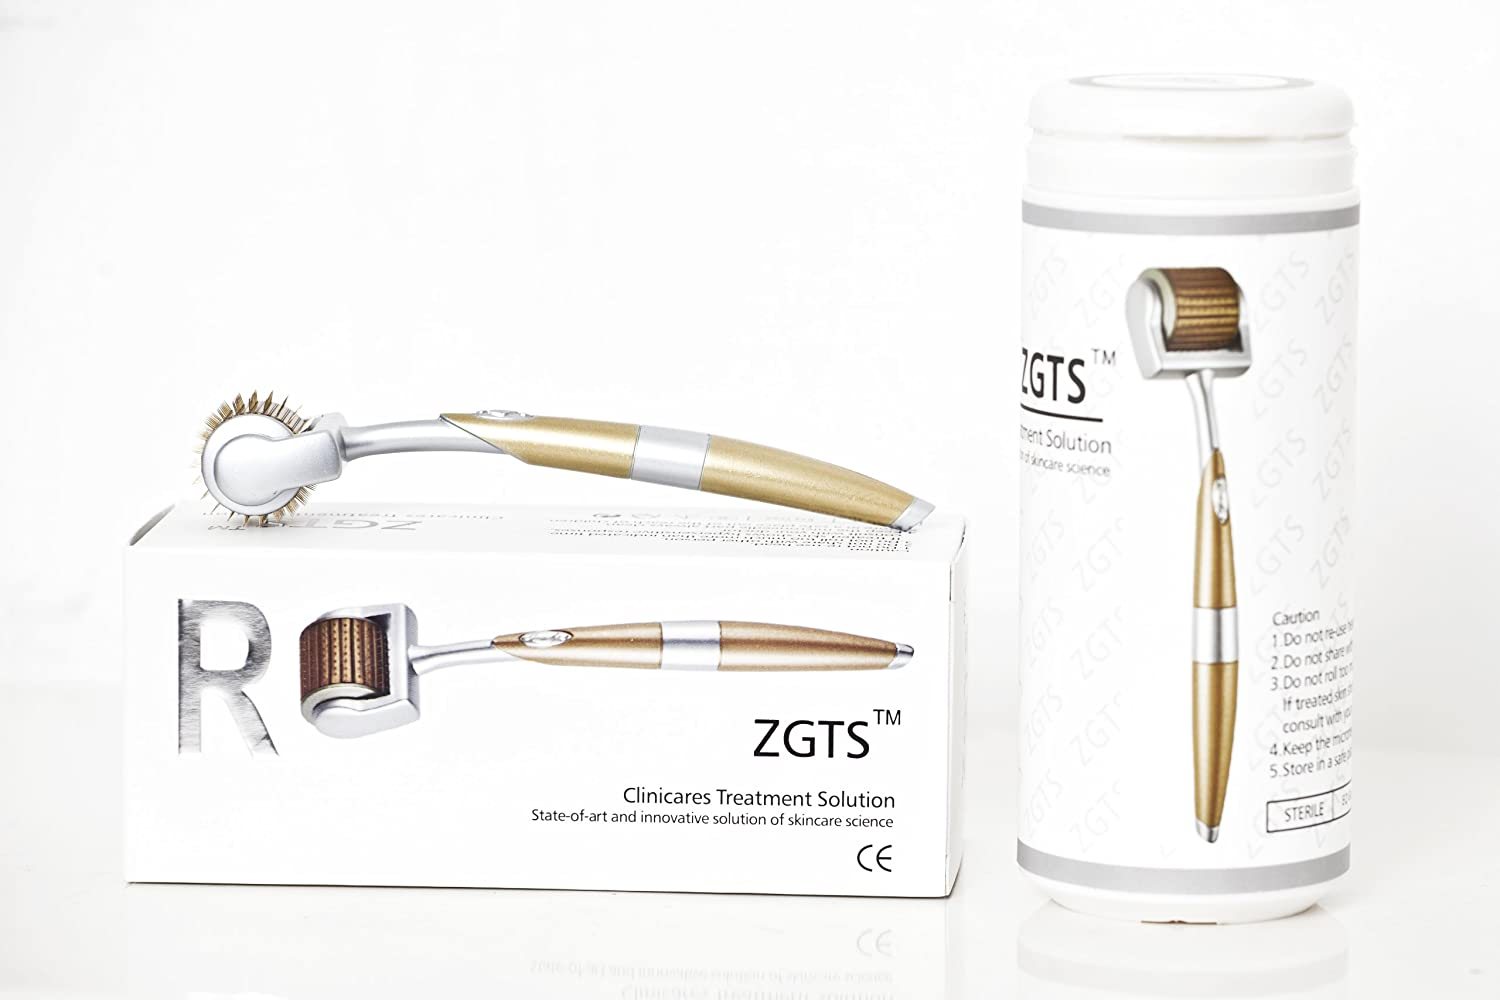 zgts lux derma roller gold